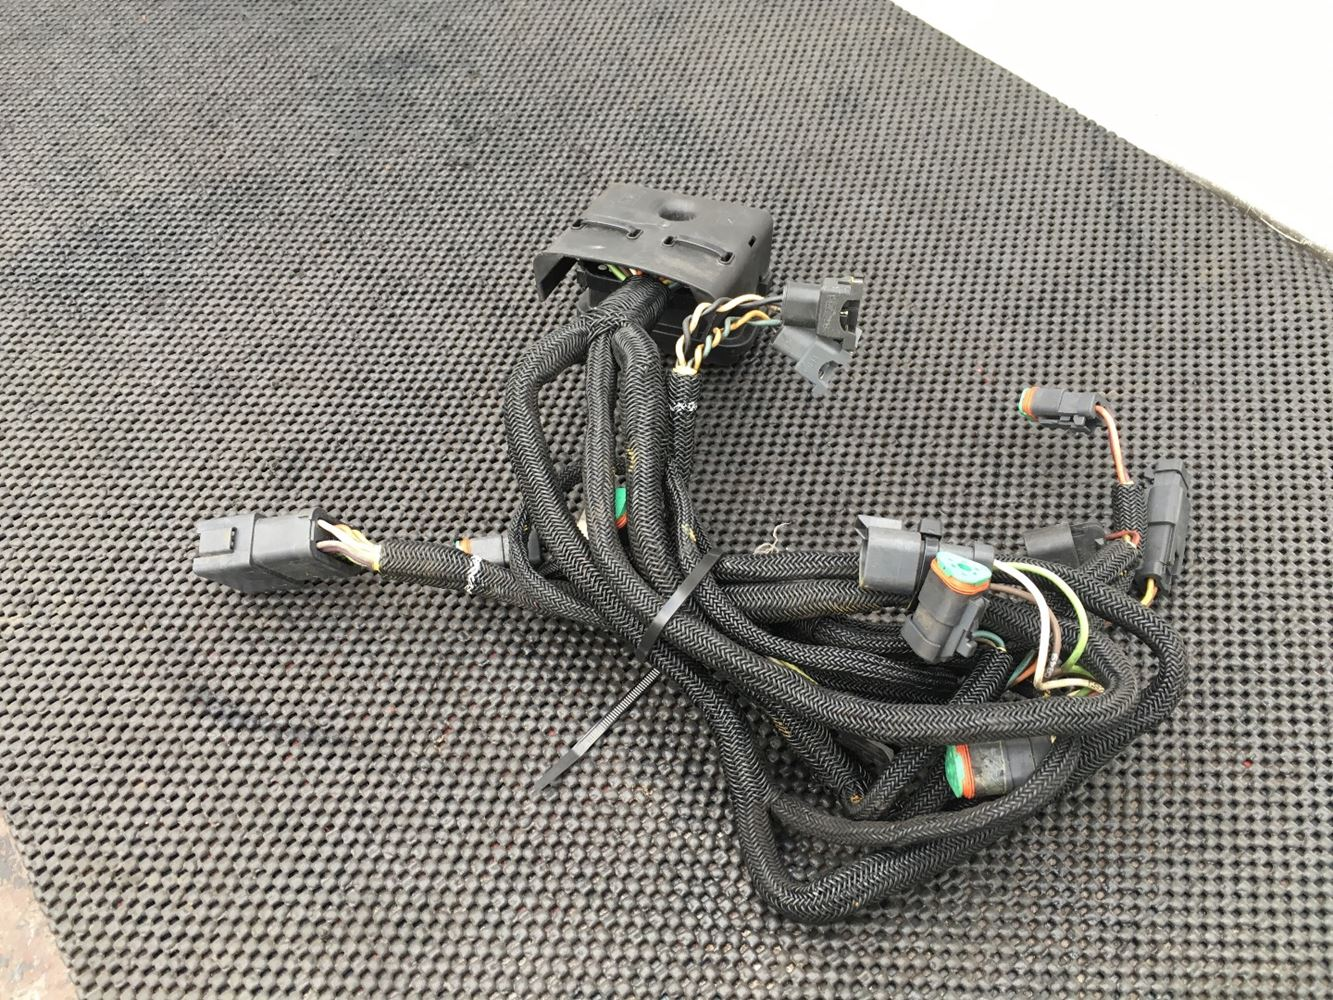 Wiring Harnesses. Photo for 14818. Photo for 14818